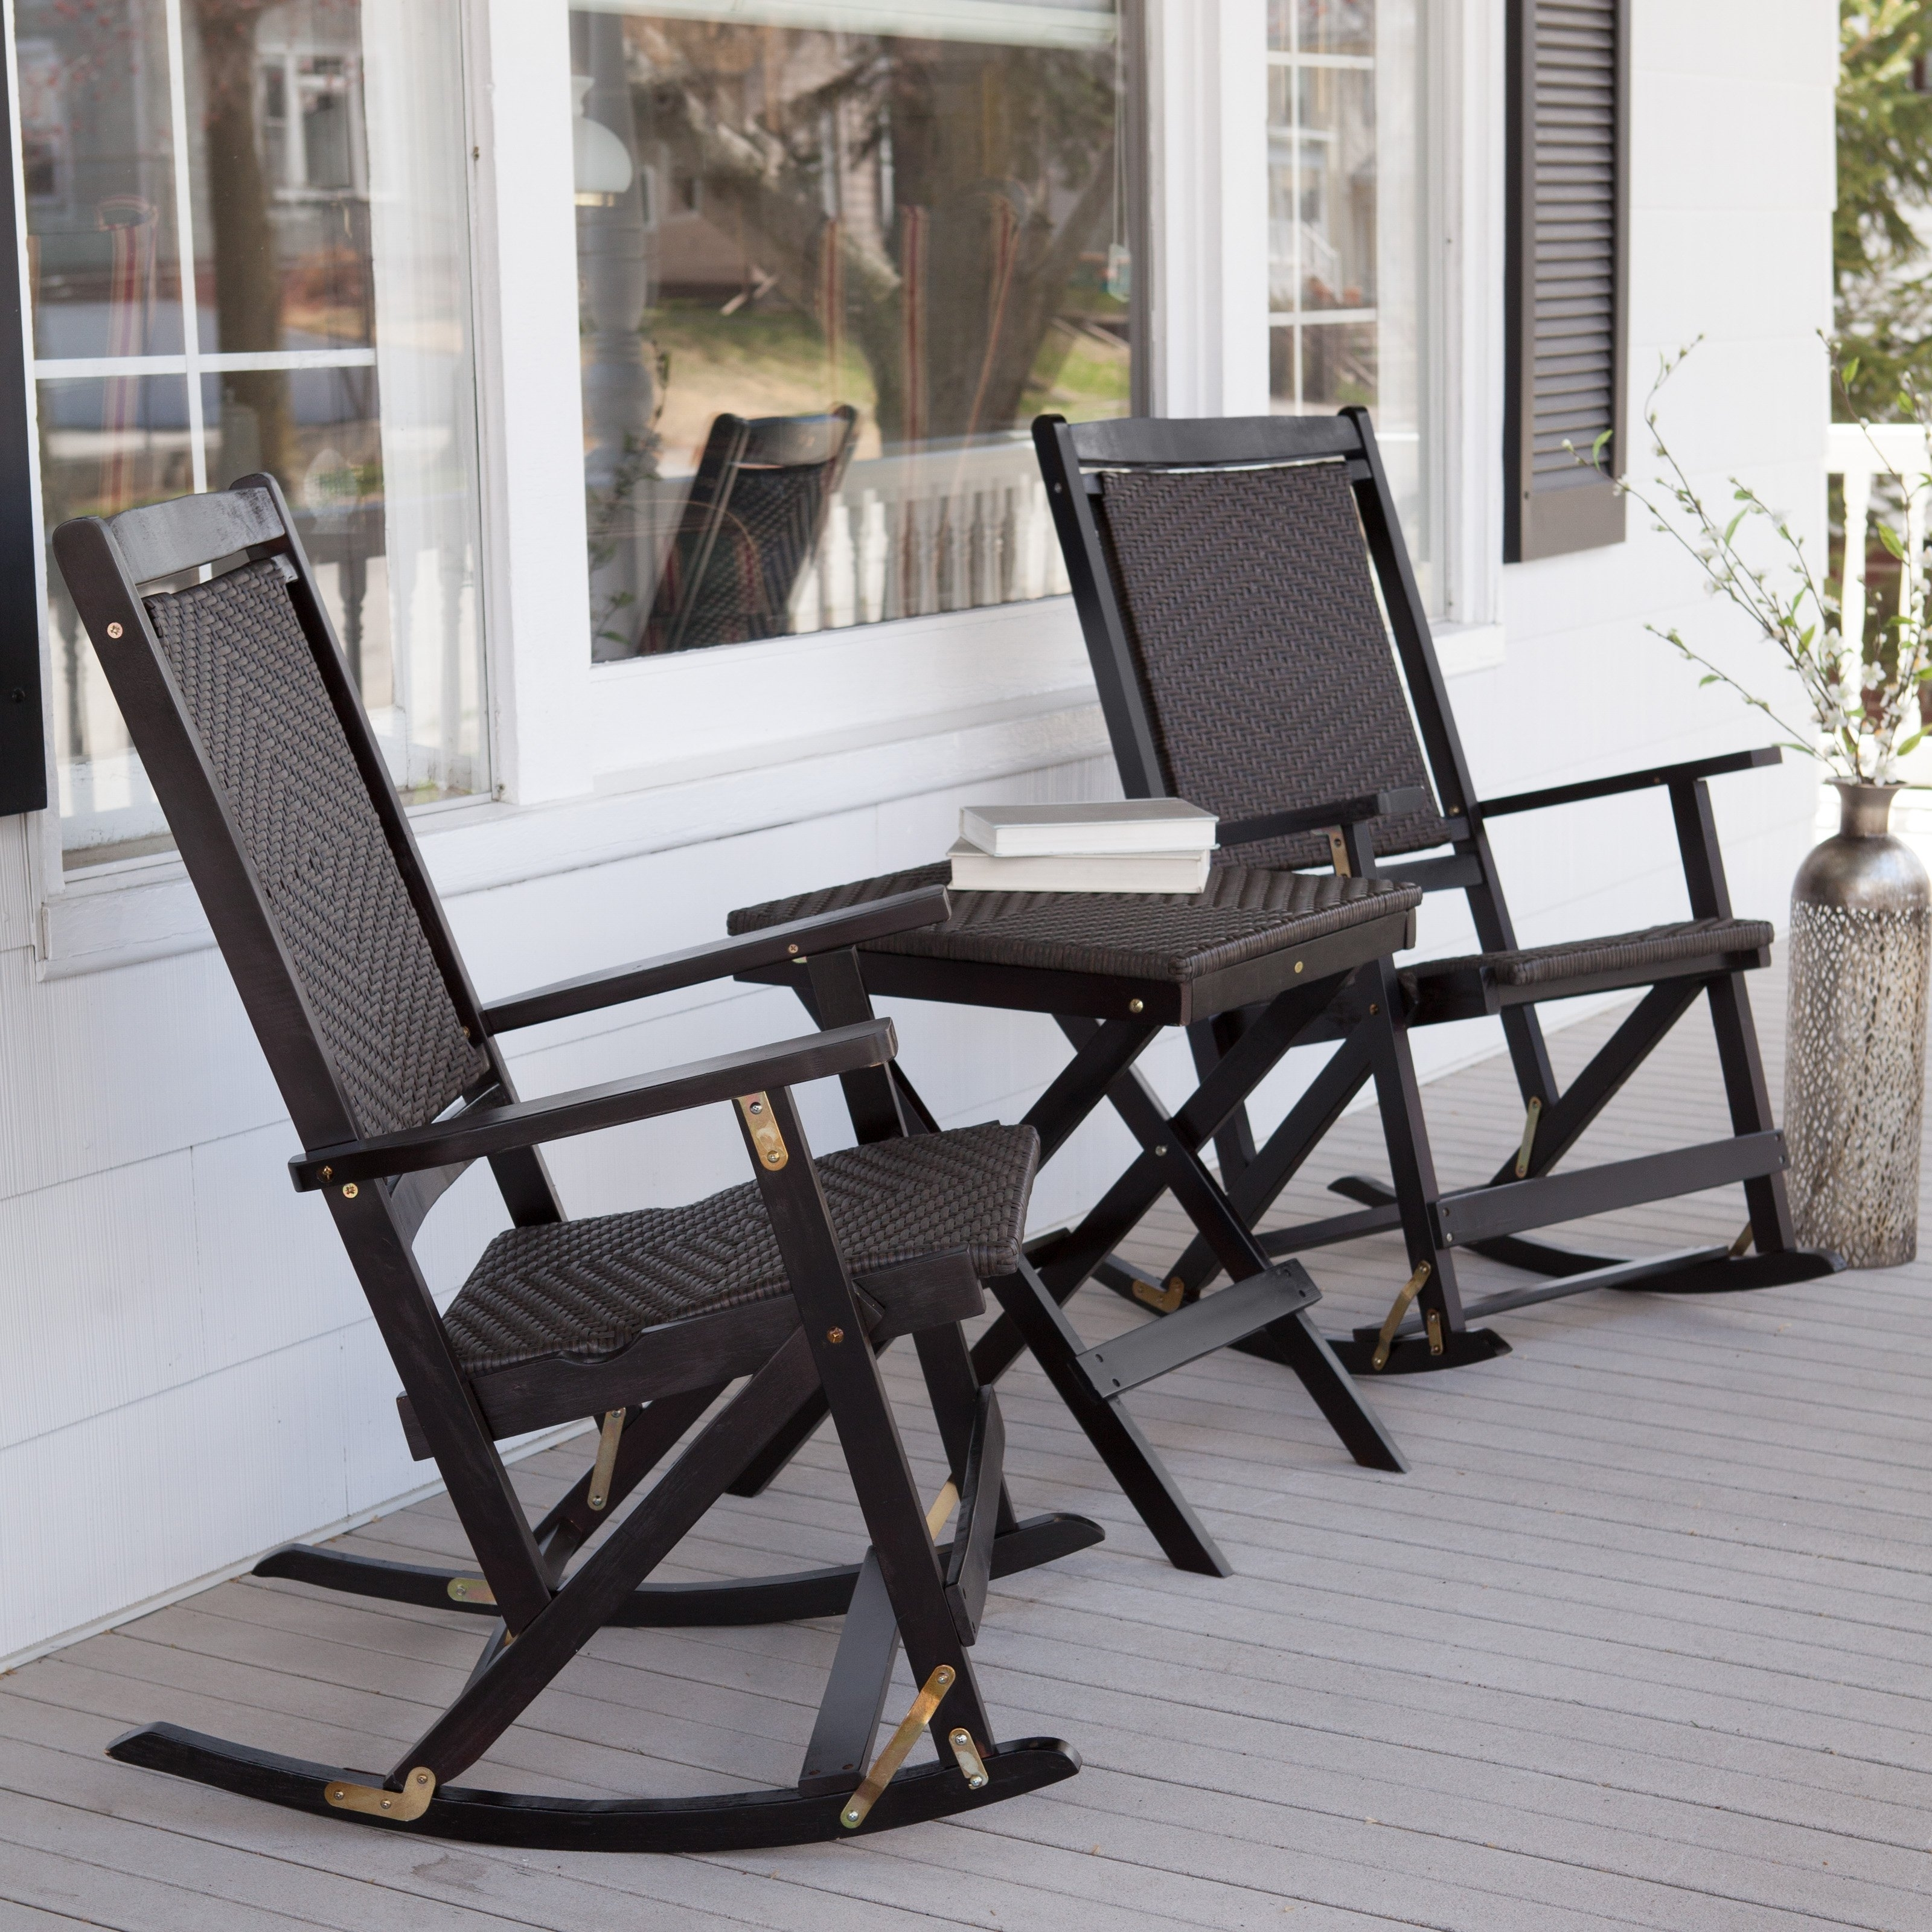 Most Up To Date Outdoor Wicker Rocking Chair Set – Outdoor Designs Throughout Outdoor Rocking Chairs With Table (View 6 of 15)